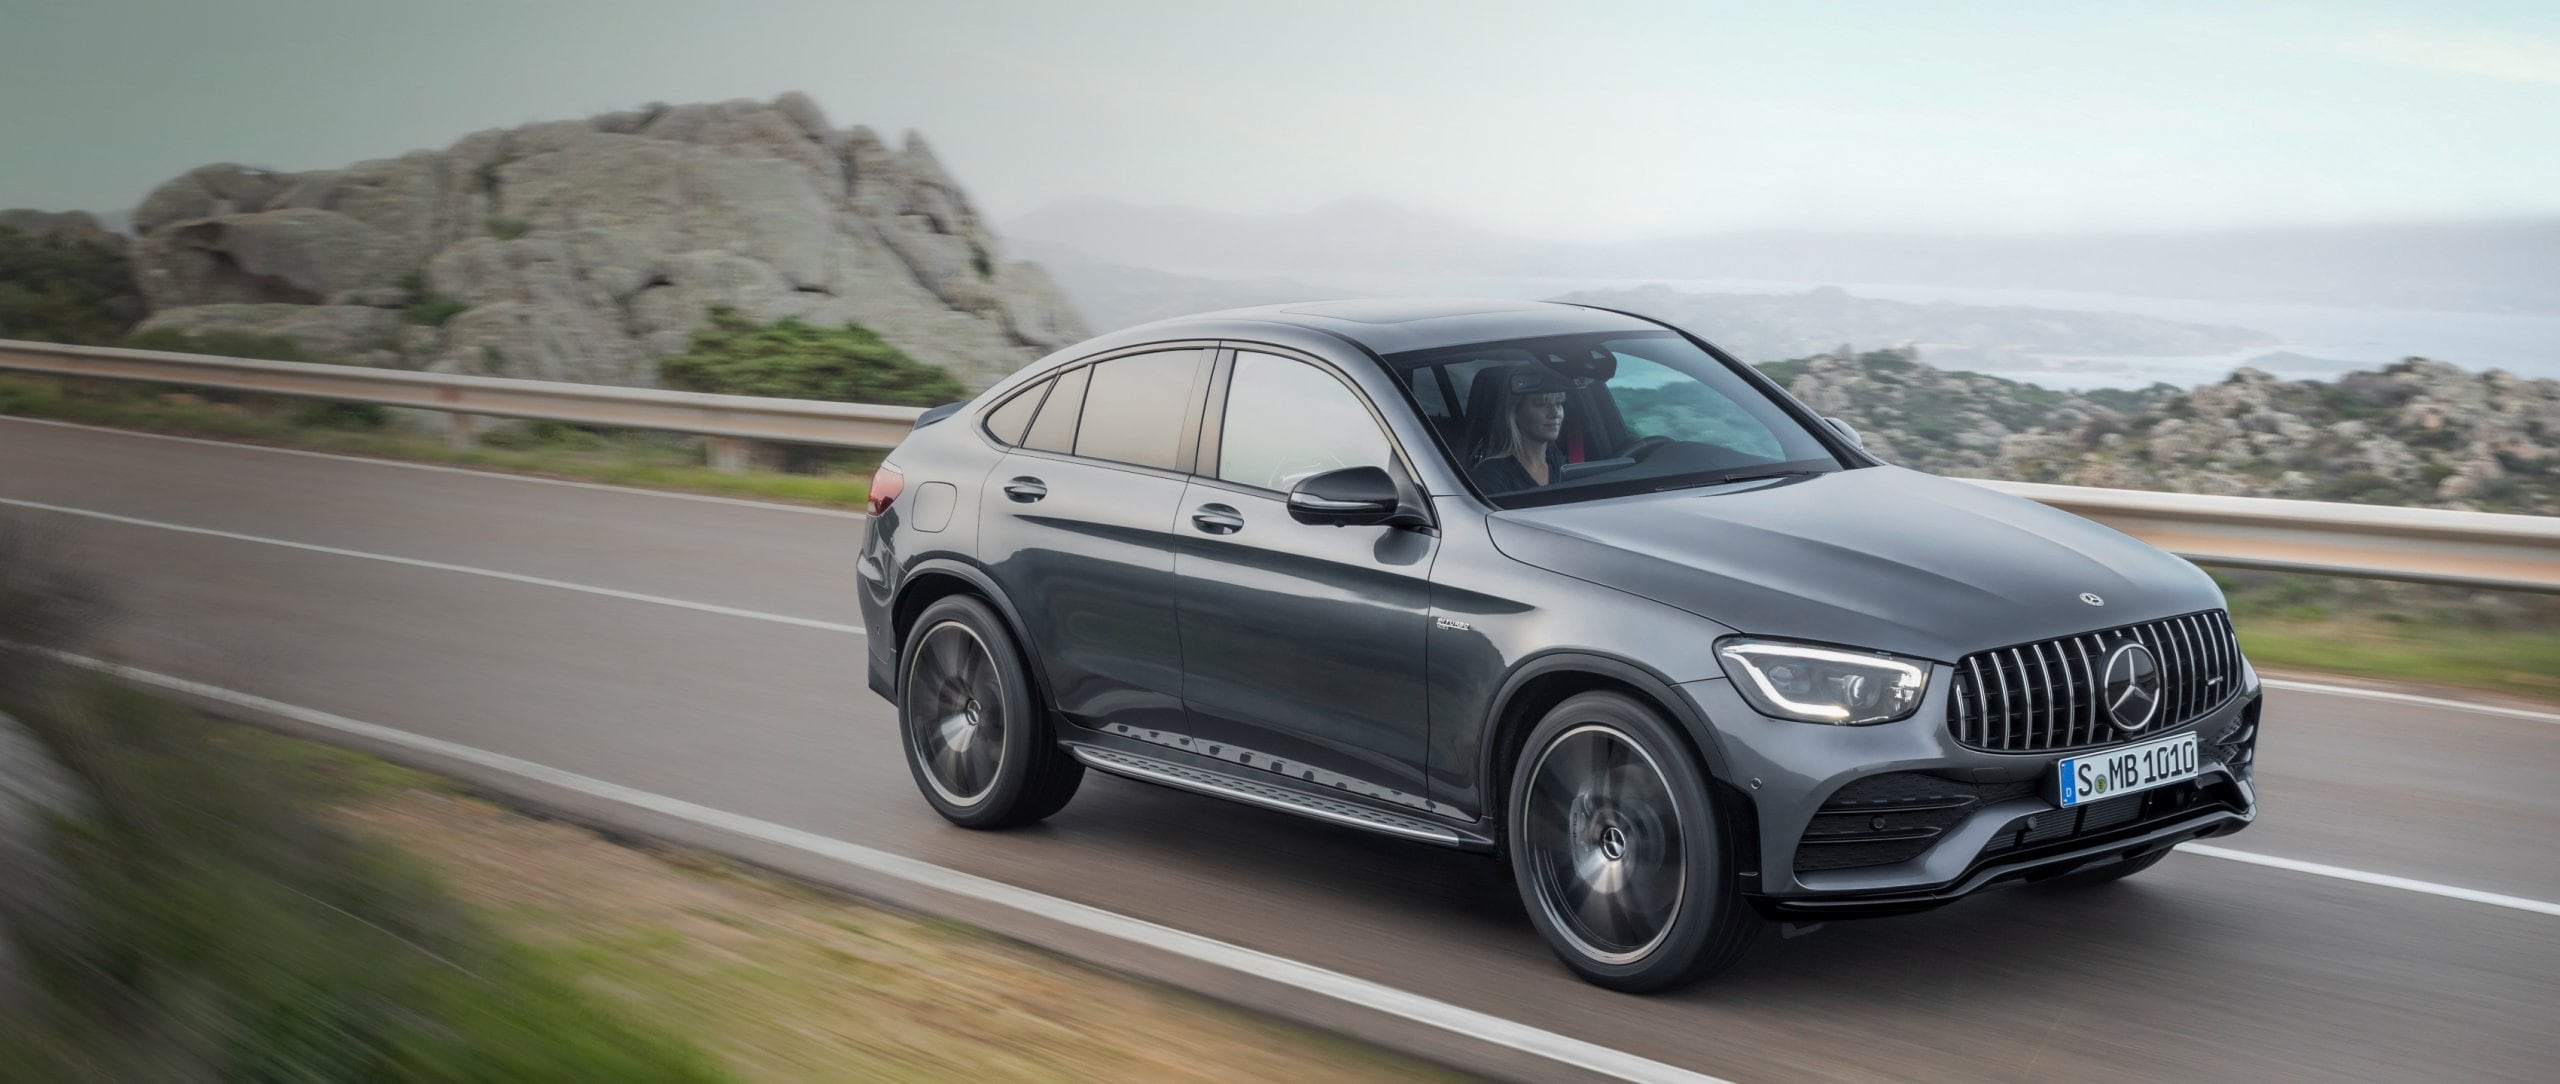 Glc 43 Amg >> The New Mercedes Amg Glc 43 4matic Models